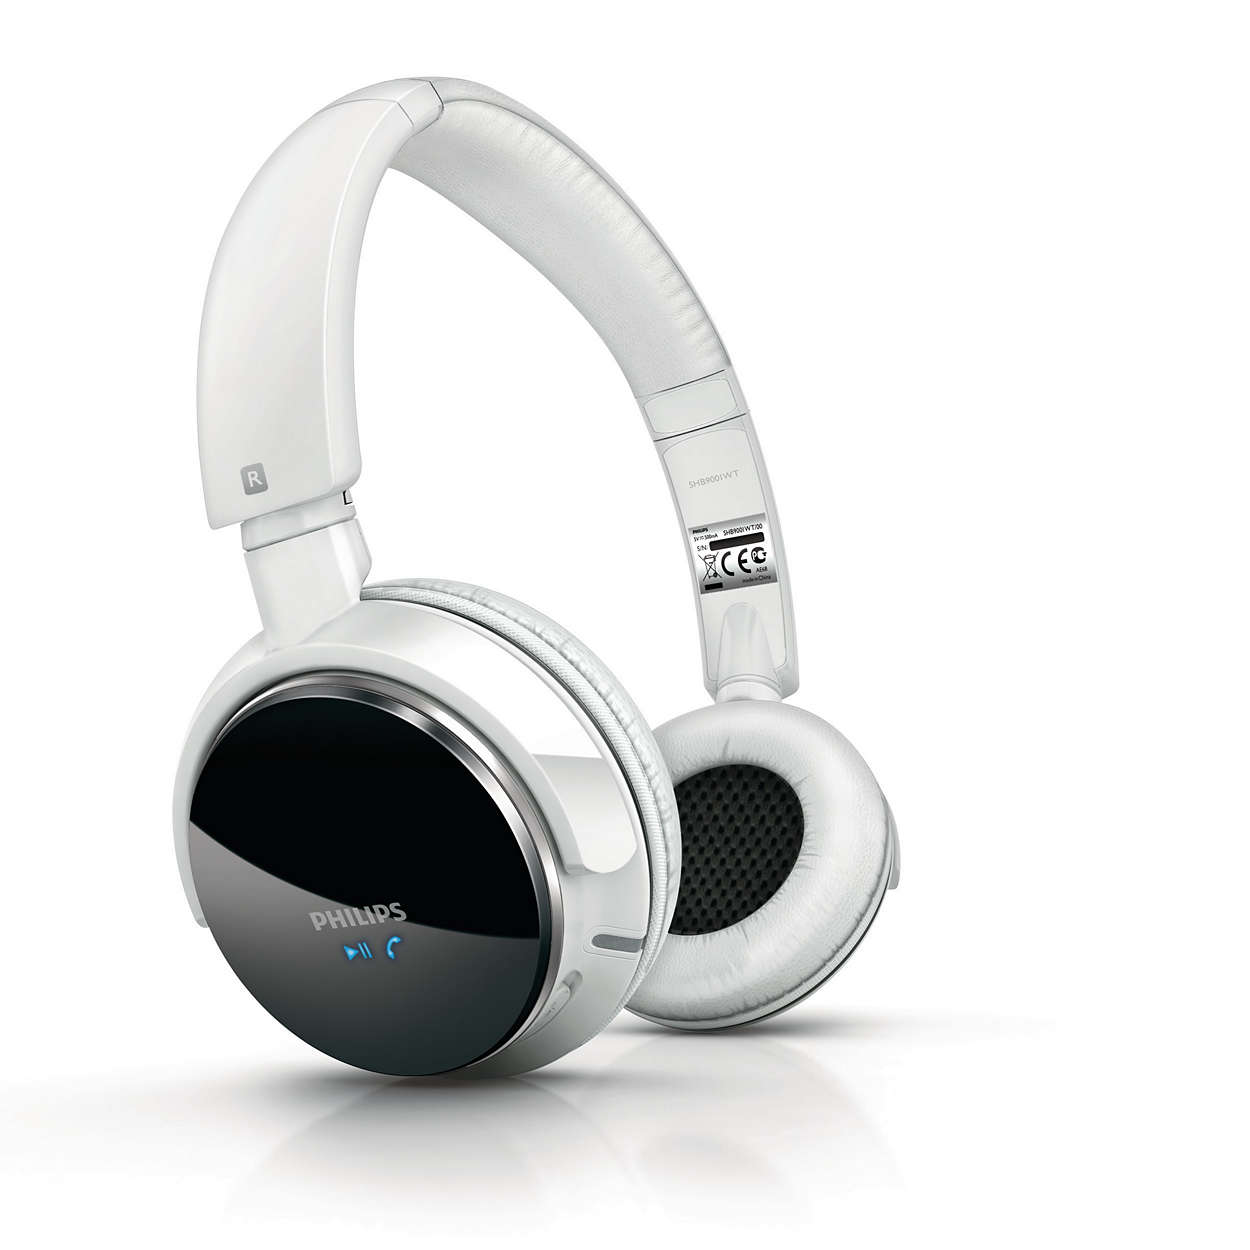 casque st r o avec micro bluetooth shb9001wt 00 philips. Black Bedroom Furniture Sets. Home Design Ideas